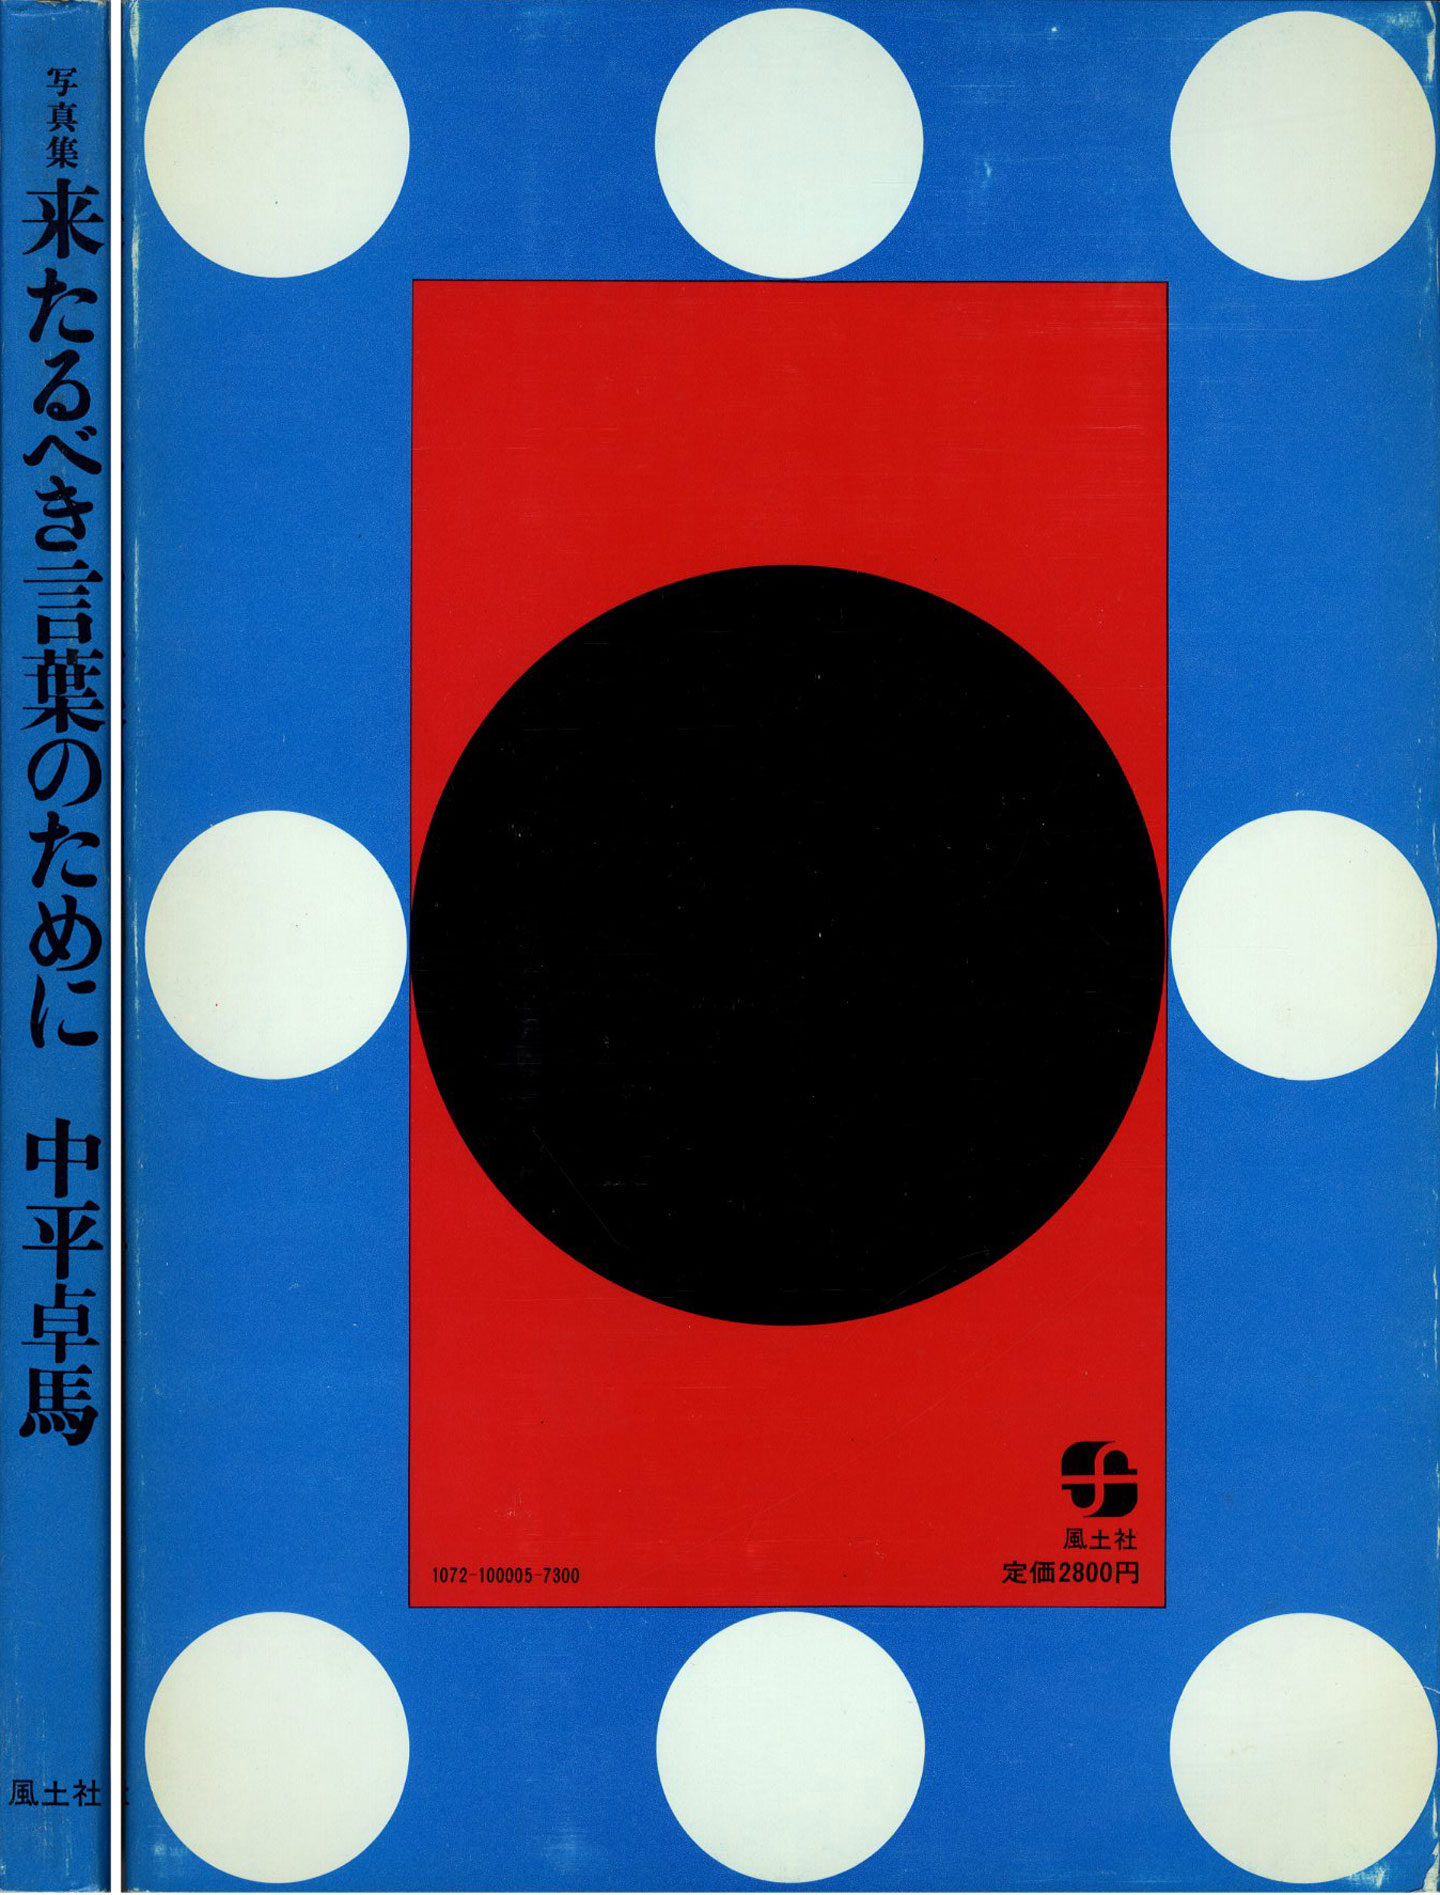 Takuma Nakahira: Kitarubeki Kotoba no Tameni (For a Language to Come) (First Edition with Slipcase, in custom clamshell box)